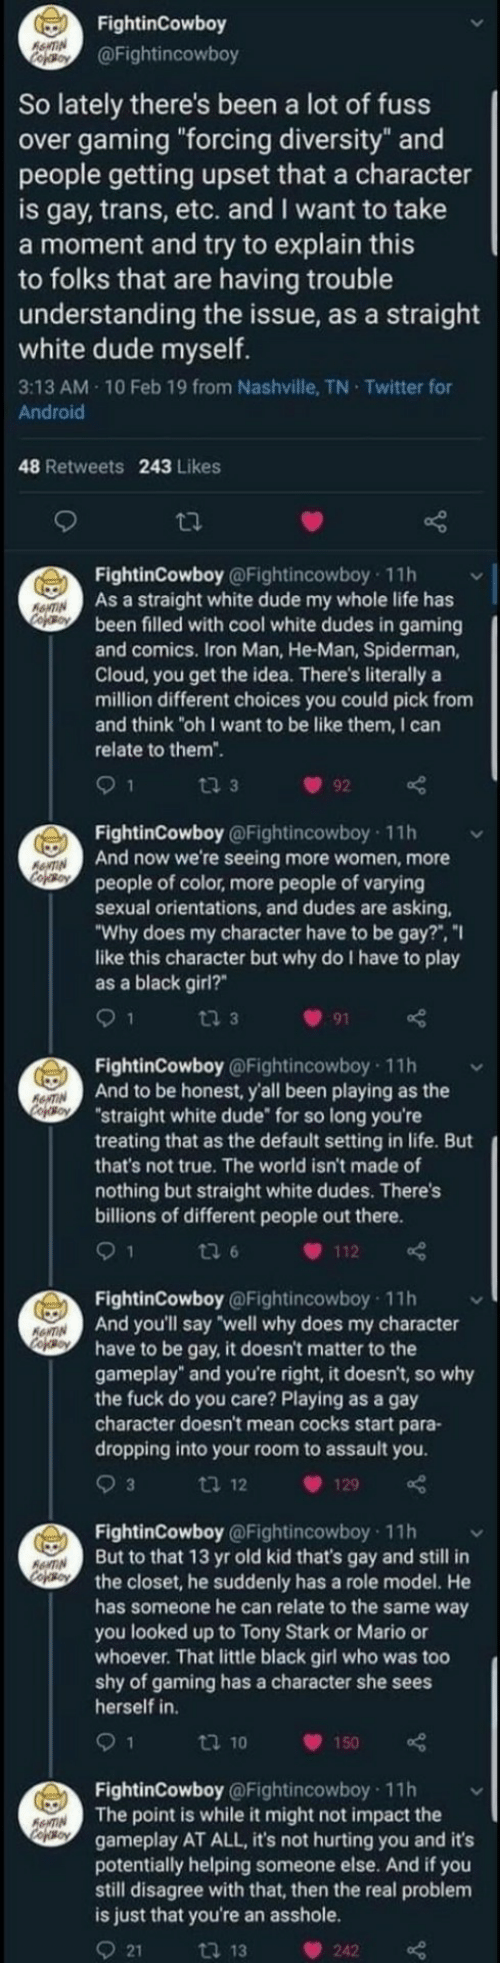 "He-Man: FightinCowboy  RewTIN  Cefoy  @Fightincowboy  So lately there's been a lot of fuss  over gaming ""forcing diversity"" and  people getting upset that a character  is gay, trans, etc. and I want to take  a moment and try to explain this  to folks that are having trouble  understanding the issue, as a straight  white dude myself.  3:13 AM 10 Feb 19 from Nashville, TN Twitter for  Android  48 Retweets 243 Likes  FightinCowboy @Fightincowboy 11h  As a straight white dude my whole life has  been filled with cool white dudes in gaming  and comics. Iron Man, He-Man, Spiderman,  Cloud, you get the idea. There's literally a  million different choices you could pick from  and think ""oh I want to be like them, I can  ANTIN  Cooy  relate to them"".  ti 3  92  FightinCowboy @Fightincowboy 11h  And now we're seeing more women, more  people of color, more people of varying  sexual orientations, and dudes are asking  ""Why does my character have to be gay?"", ""I  like this character but why do I have to play  as a black girl?  ANTIN  CofoBoy  9 1  ti 3  91  FightinCowboy @Fightincowboy 11h  And to be honest, y'all been playing as the  ""straight white dude for so long you're  treating that as the default setting in life. But  that's not true. The world isn't made of  RNTIN  CopOBoY  nothing but straight white dudes. There's  billions of different people out there.  1  ti 6  112  FightinCowboy @Fightincowboy 11h  And you'll say well why does my character  have to be gay, it doesn't matter to the  gameplay"" and you're right, it doesn't, so why  the fuck do you care? Playing as a gay  character doesn't mean cocks start para-  dropping into your room to assault you  ANTIN  cofeo  3  ti 12  129  FightinCowboy @Fightincowboy 11h  But to that 13 yr old kid that's gay and still in  the closet, he suddenly has a role model. He  has someone he can relate to the same way  you looked up to Tony Stark or Mario or  whoever. That little black girl who was too  shy of gaming has a character she sees  herself in  AANTIN  Cojso  9 1  t 10  150  FightinCowboy @Fightincowboy 11h  The point is while it might not impact the  gameplay AT ALL, it's not hurting you and it's  potentially helping someone else. And if you  still disagree with that, then the real problem  is just that you're an asshole.  AeNTIN  Cofeso  21  ti 13  242"